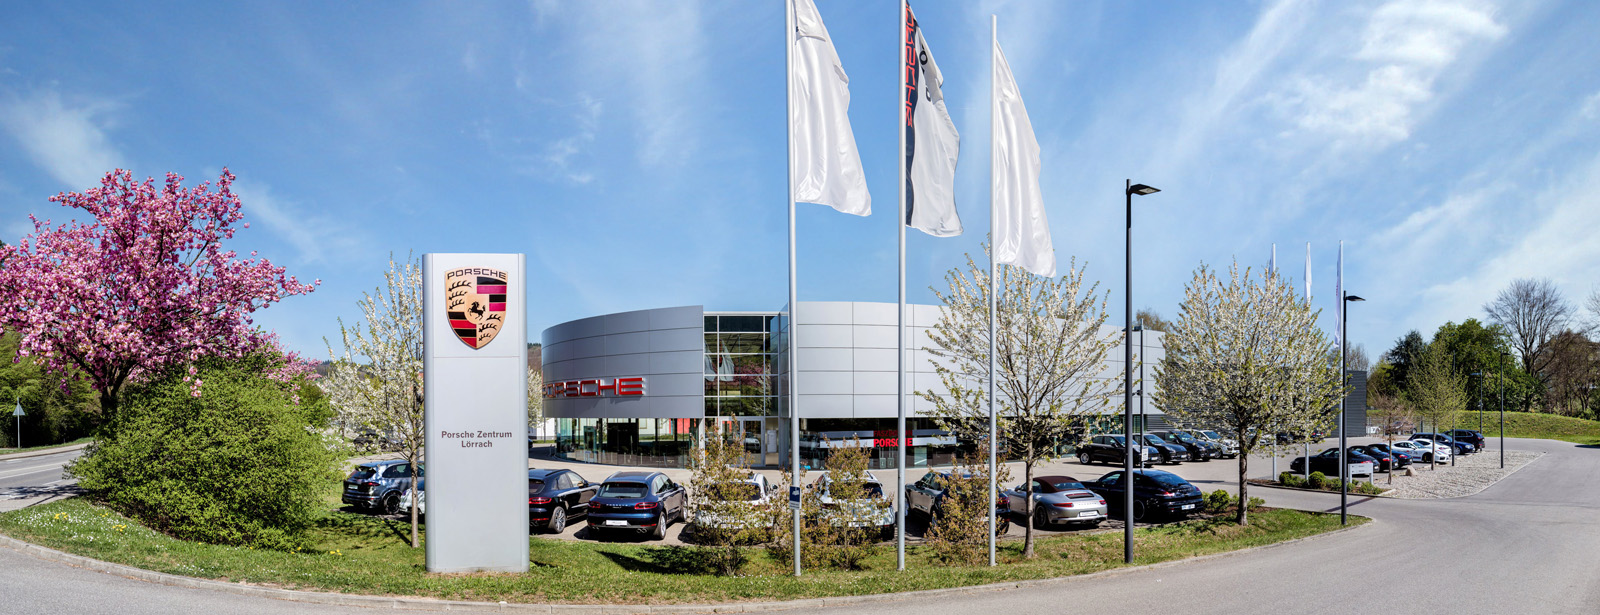 Porsche Centre Lörrach